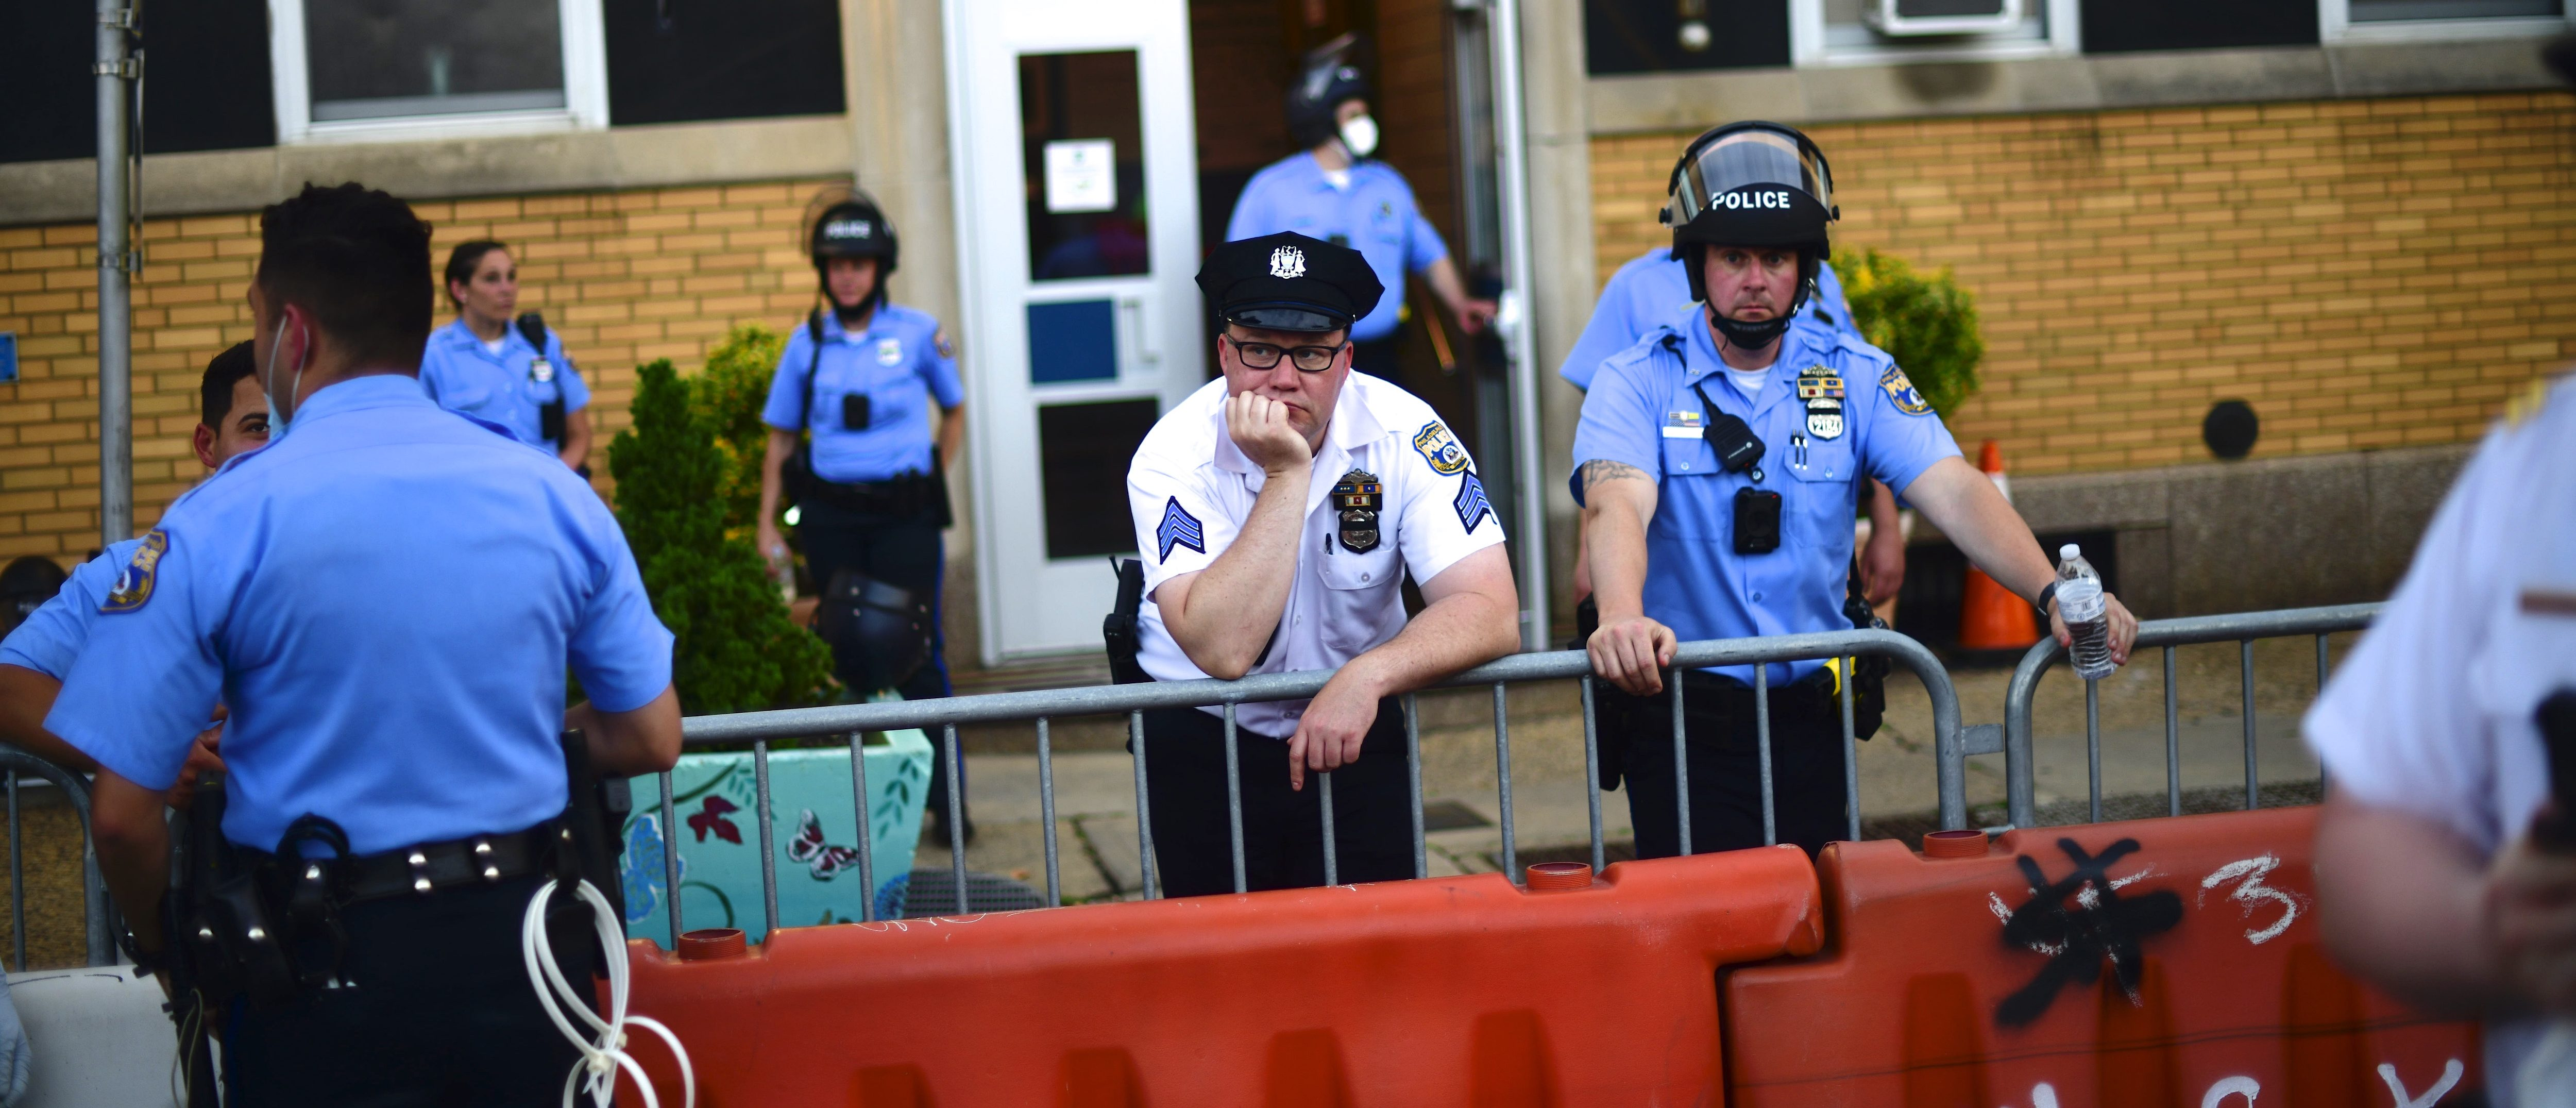 PHILADELPHIA, PA - JUNE 03: Police officers react while observing activists gathering in protest outside the 26th Precinct on June 3, 2020 in Philadelphia, Pennsylvania. Protests continue to erupt in cities throughout the country over George Floyd, the black man who died while in police custody in Minneapolis on May 25. (Photo by Mark Makela/Getty Images)